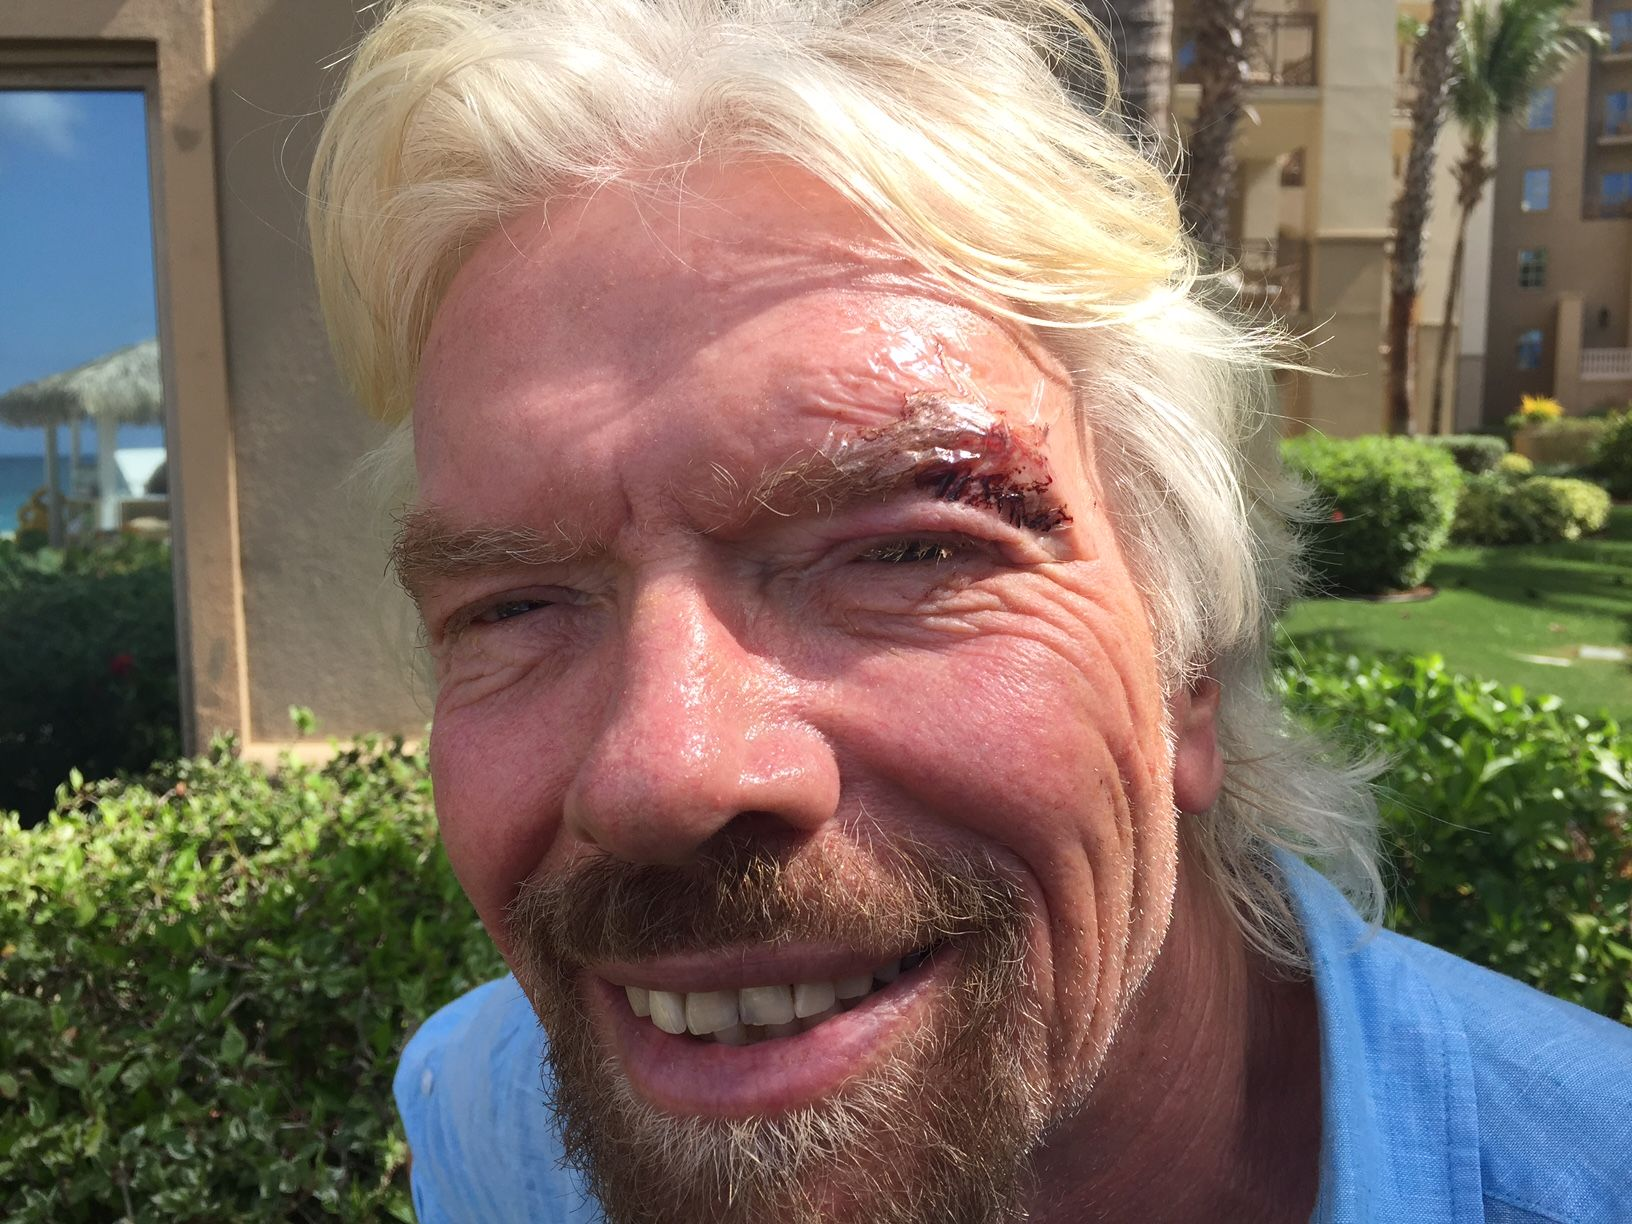 RT @richardbranson: Went into a shop to buy Joan a gift. Didn't notice the glass door... Needed 3 stitches https://t.co/fMinlLKreW https://…